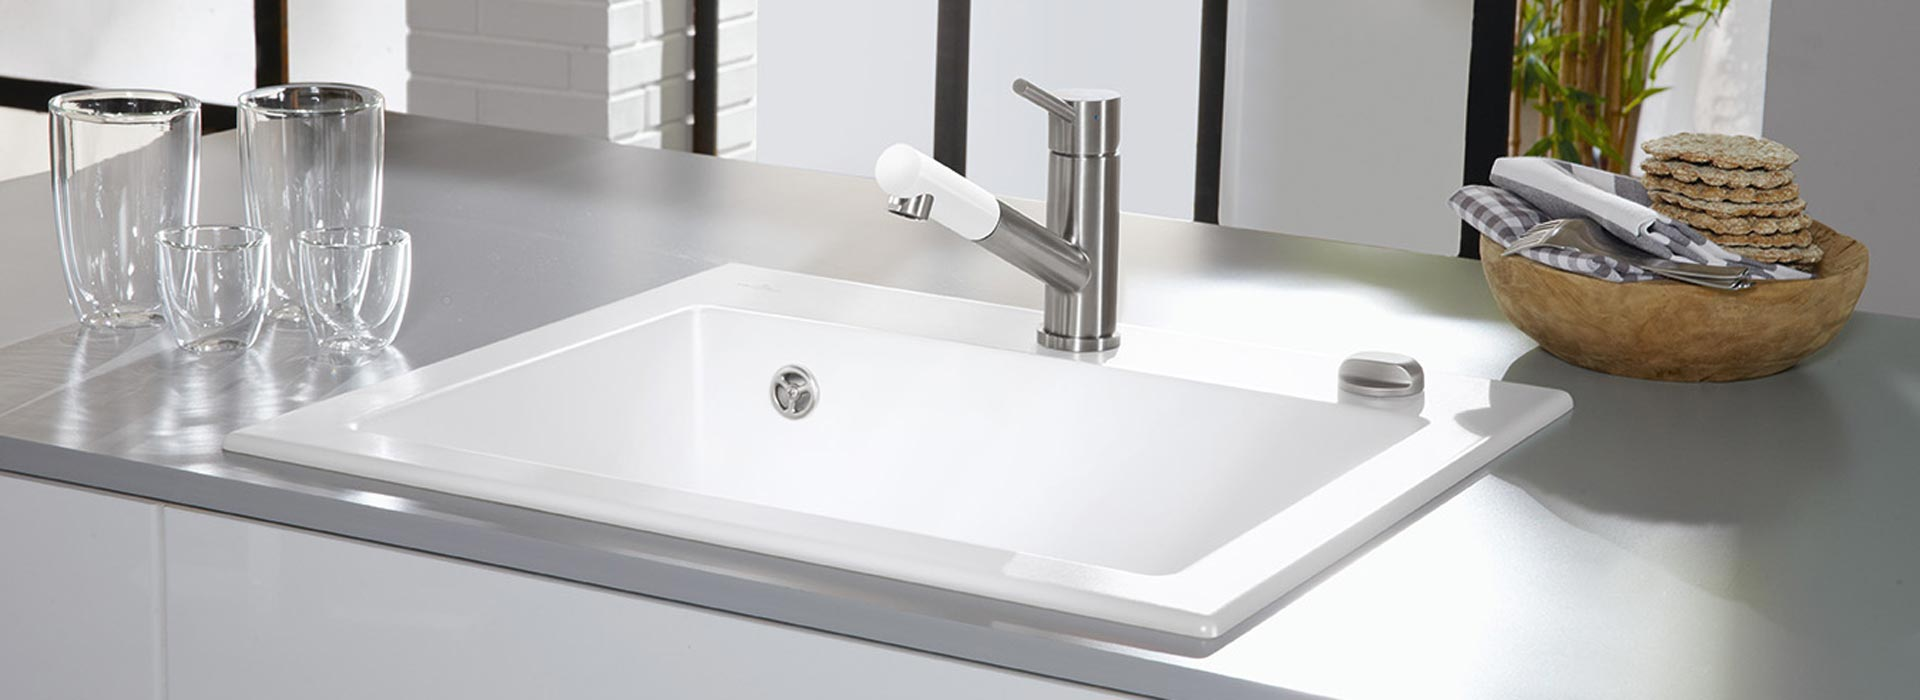 High-quality ceramic sink from Villeroy & Boch